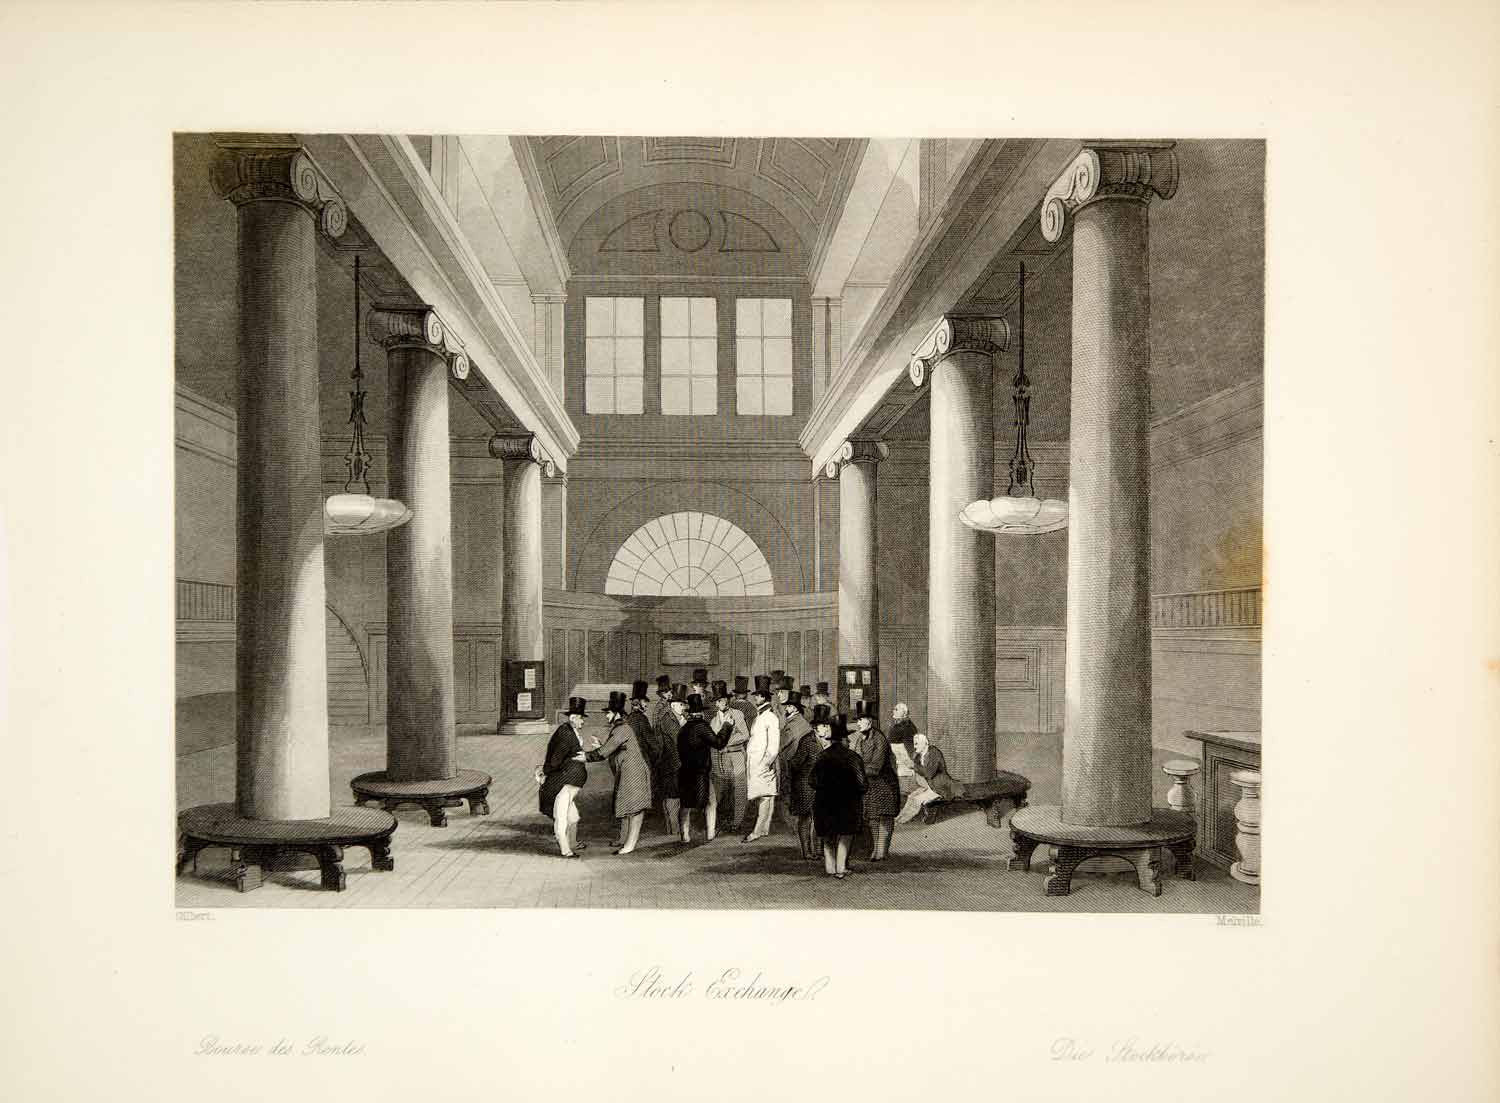 1845 Steel Engraving J Gilbert London Stock Exchange England Victorian XGHD9 - Period Paper